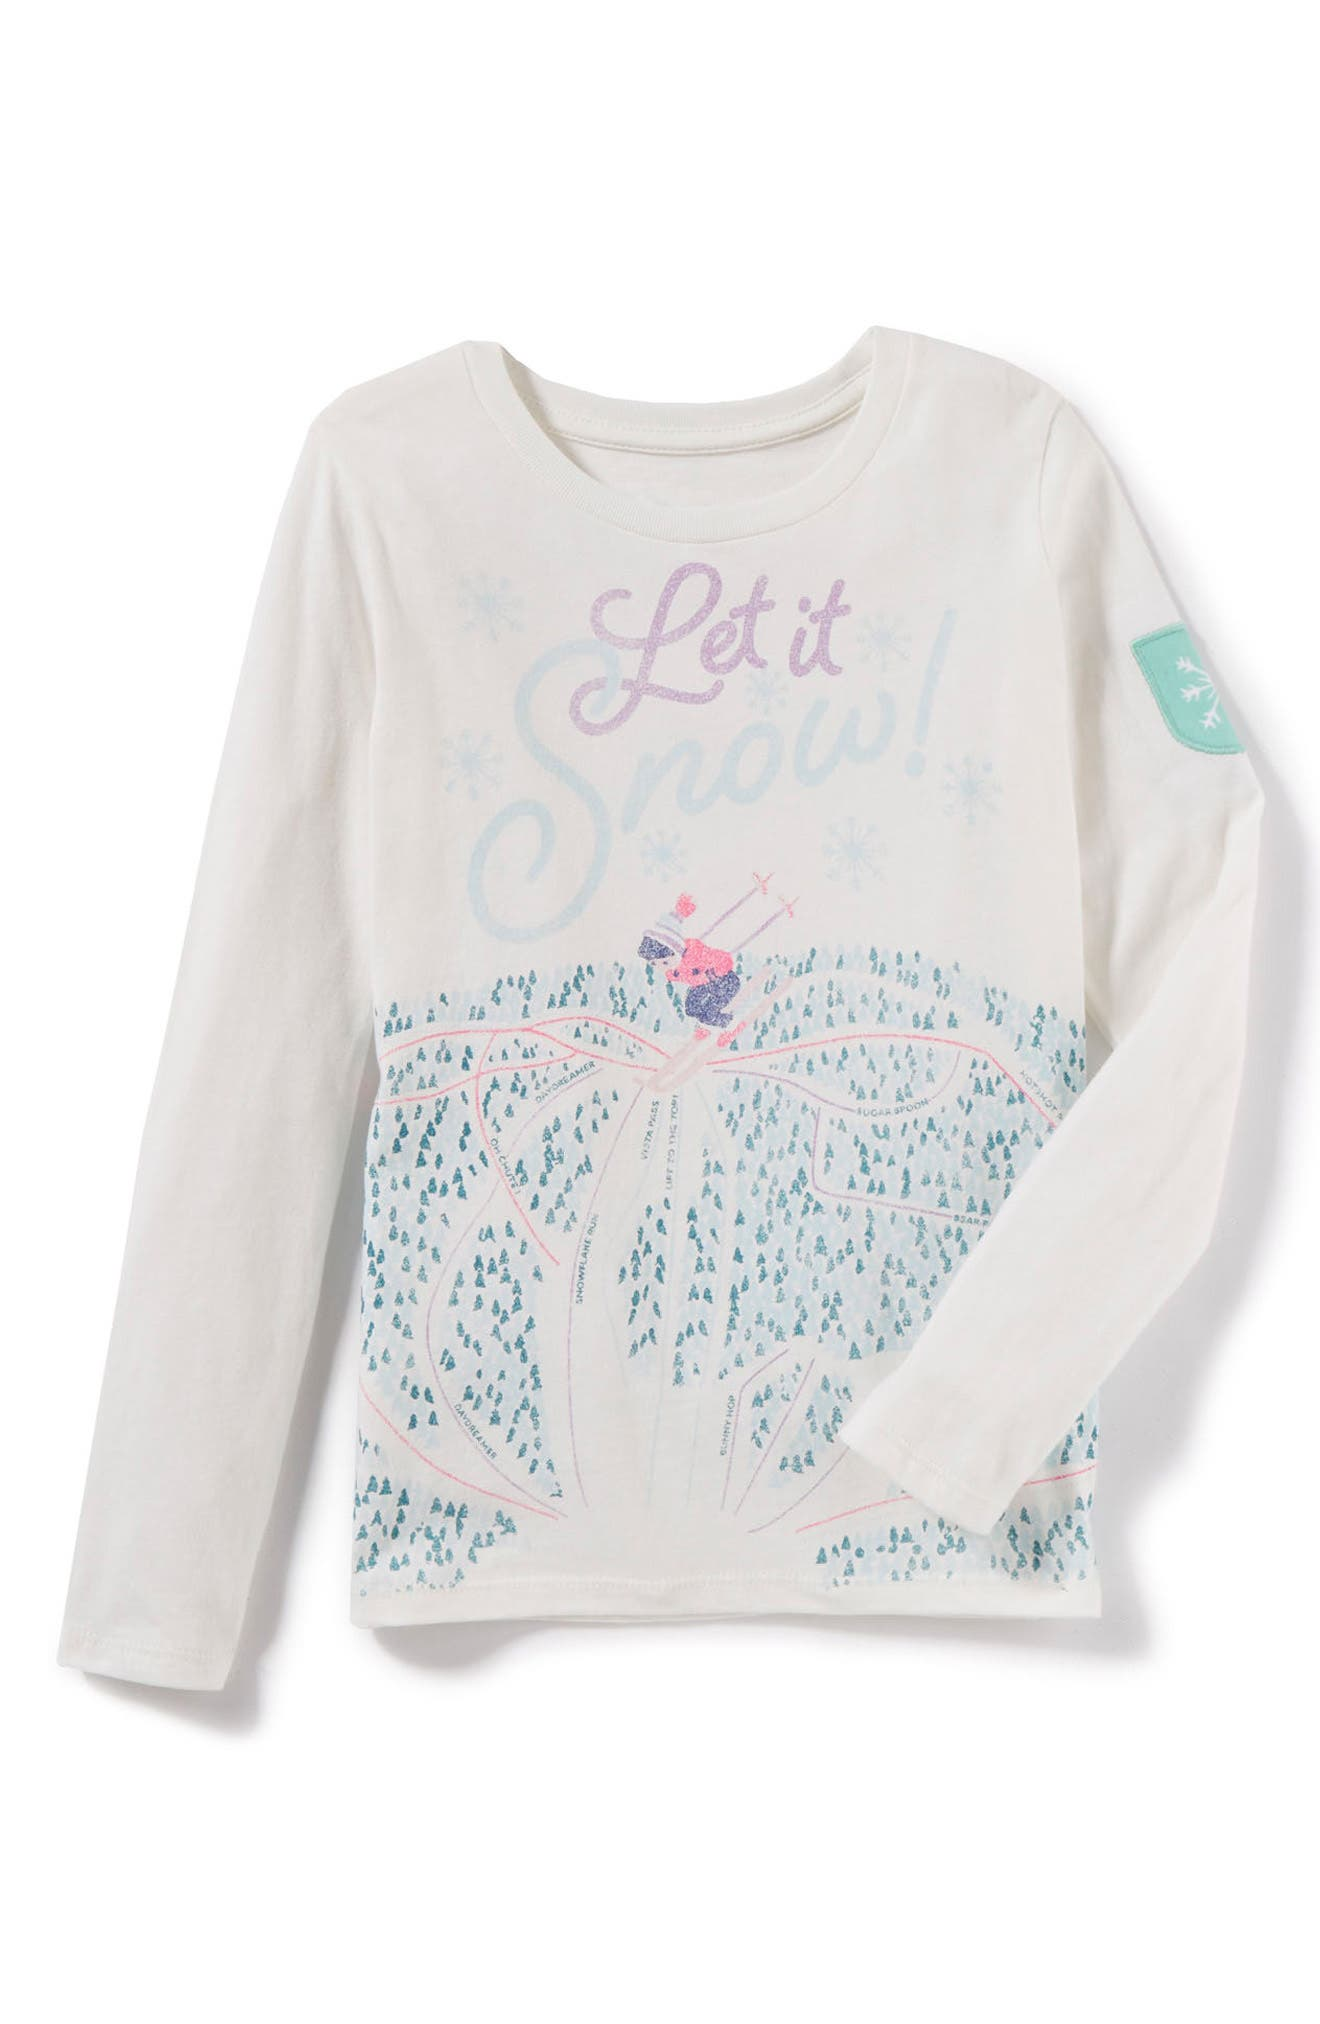 Let it Snow Tee,                             Main thumbnail 1, color,                             906